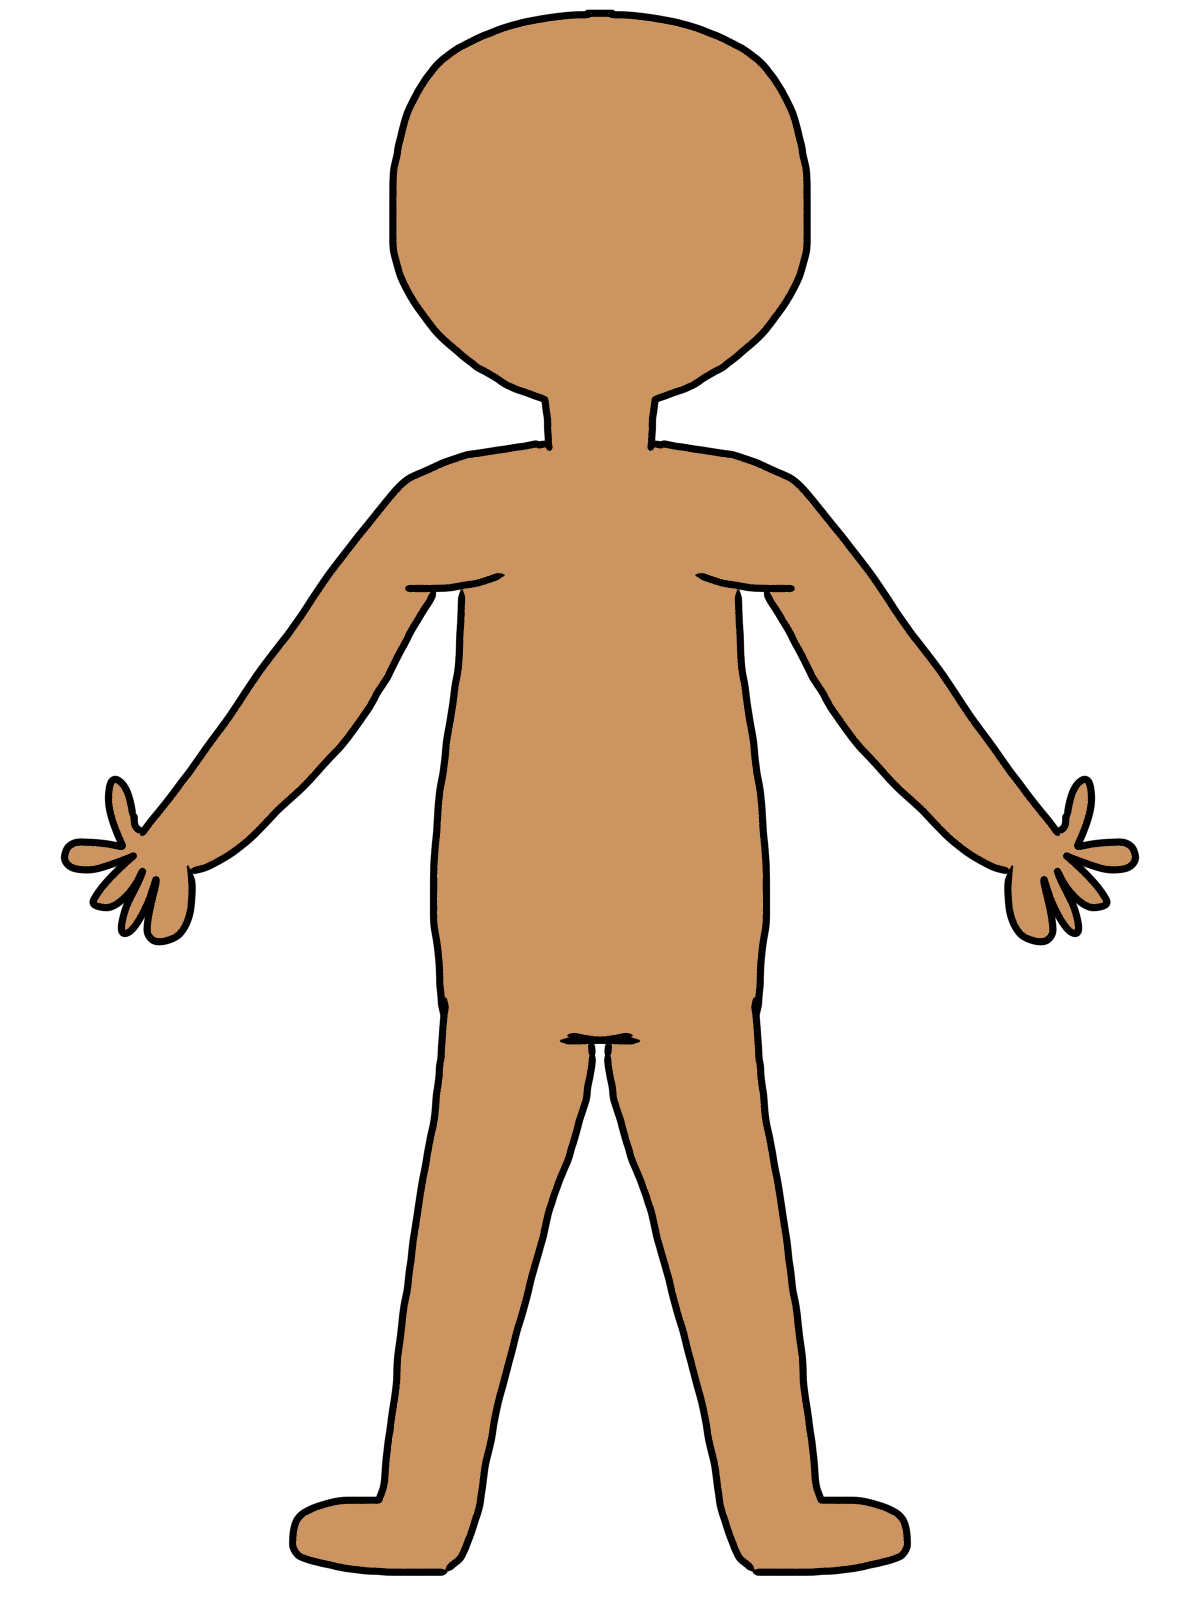 Cartoon Body System Clipart - Clipart Kid